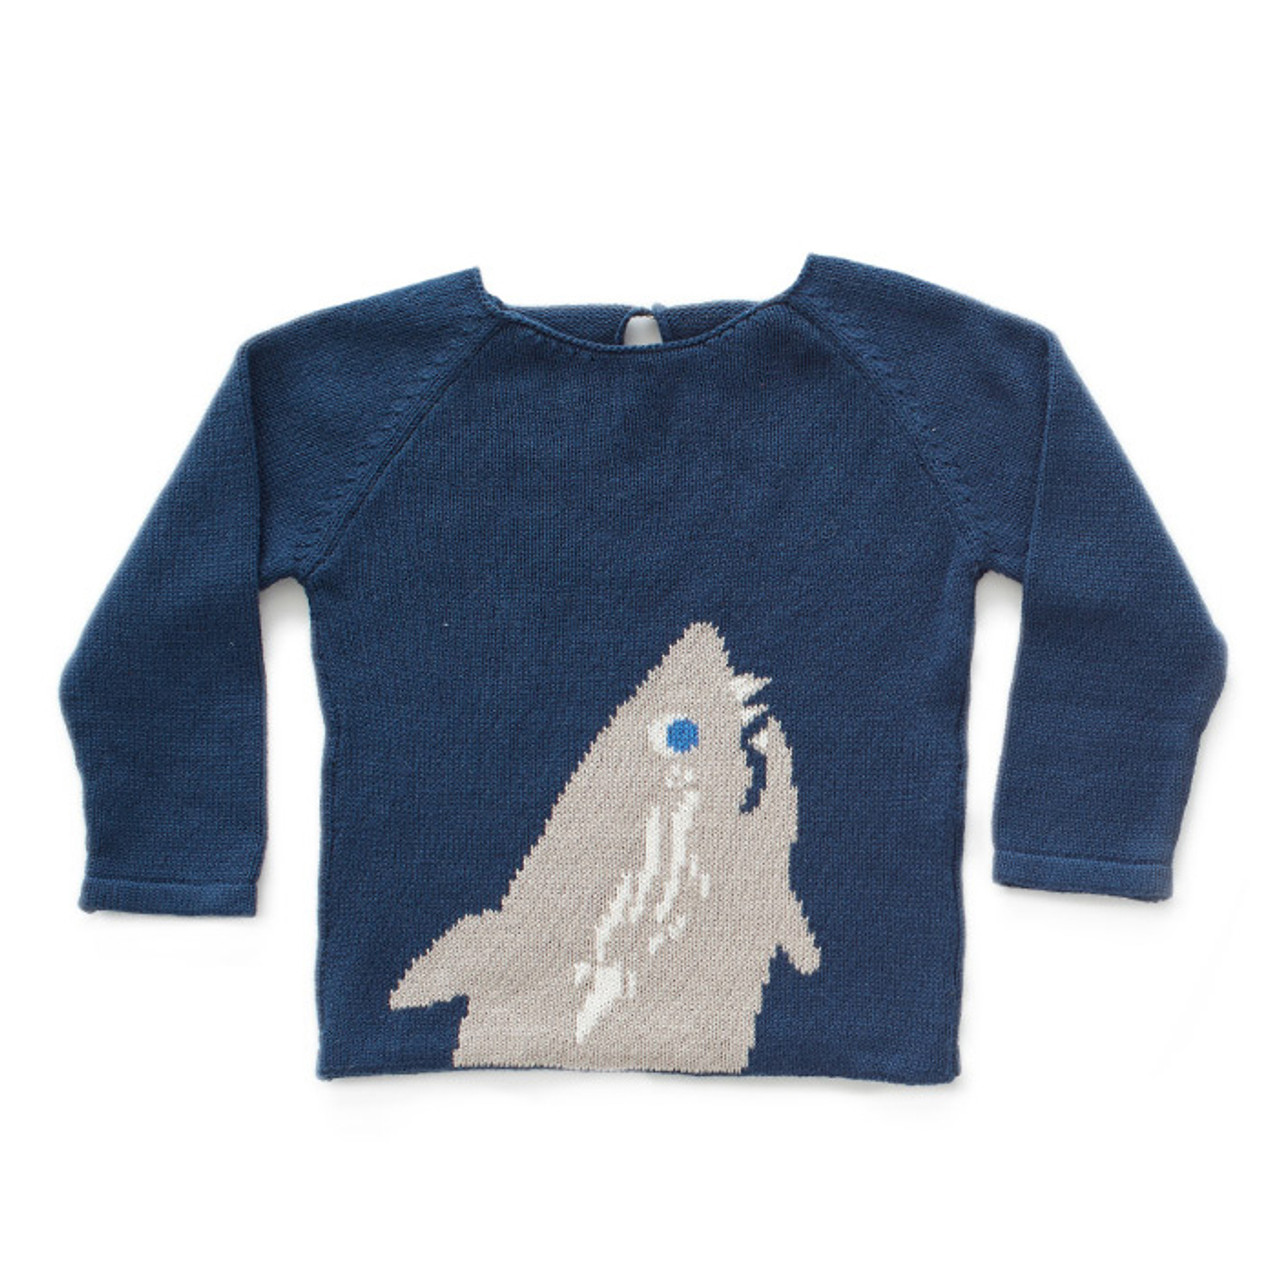 aa651a834 Oeuf Shark Sweater - Spearmint Ventures, LLC